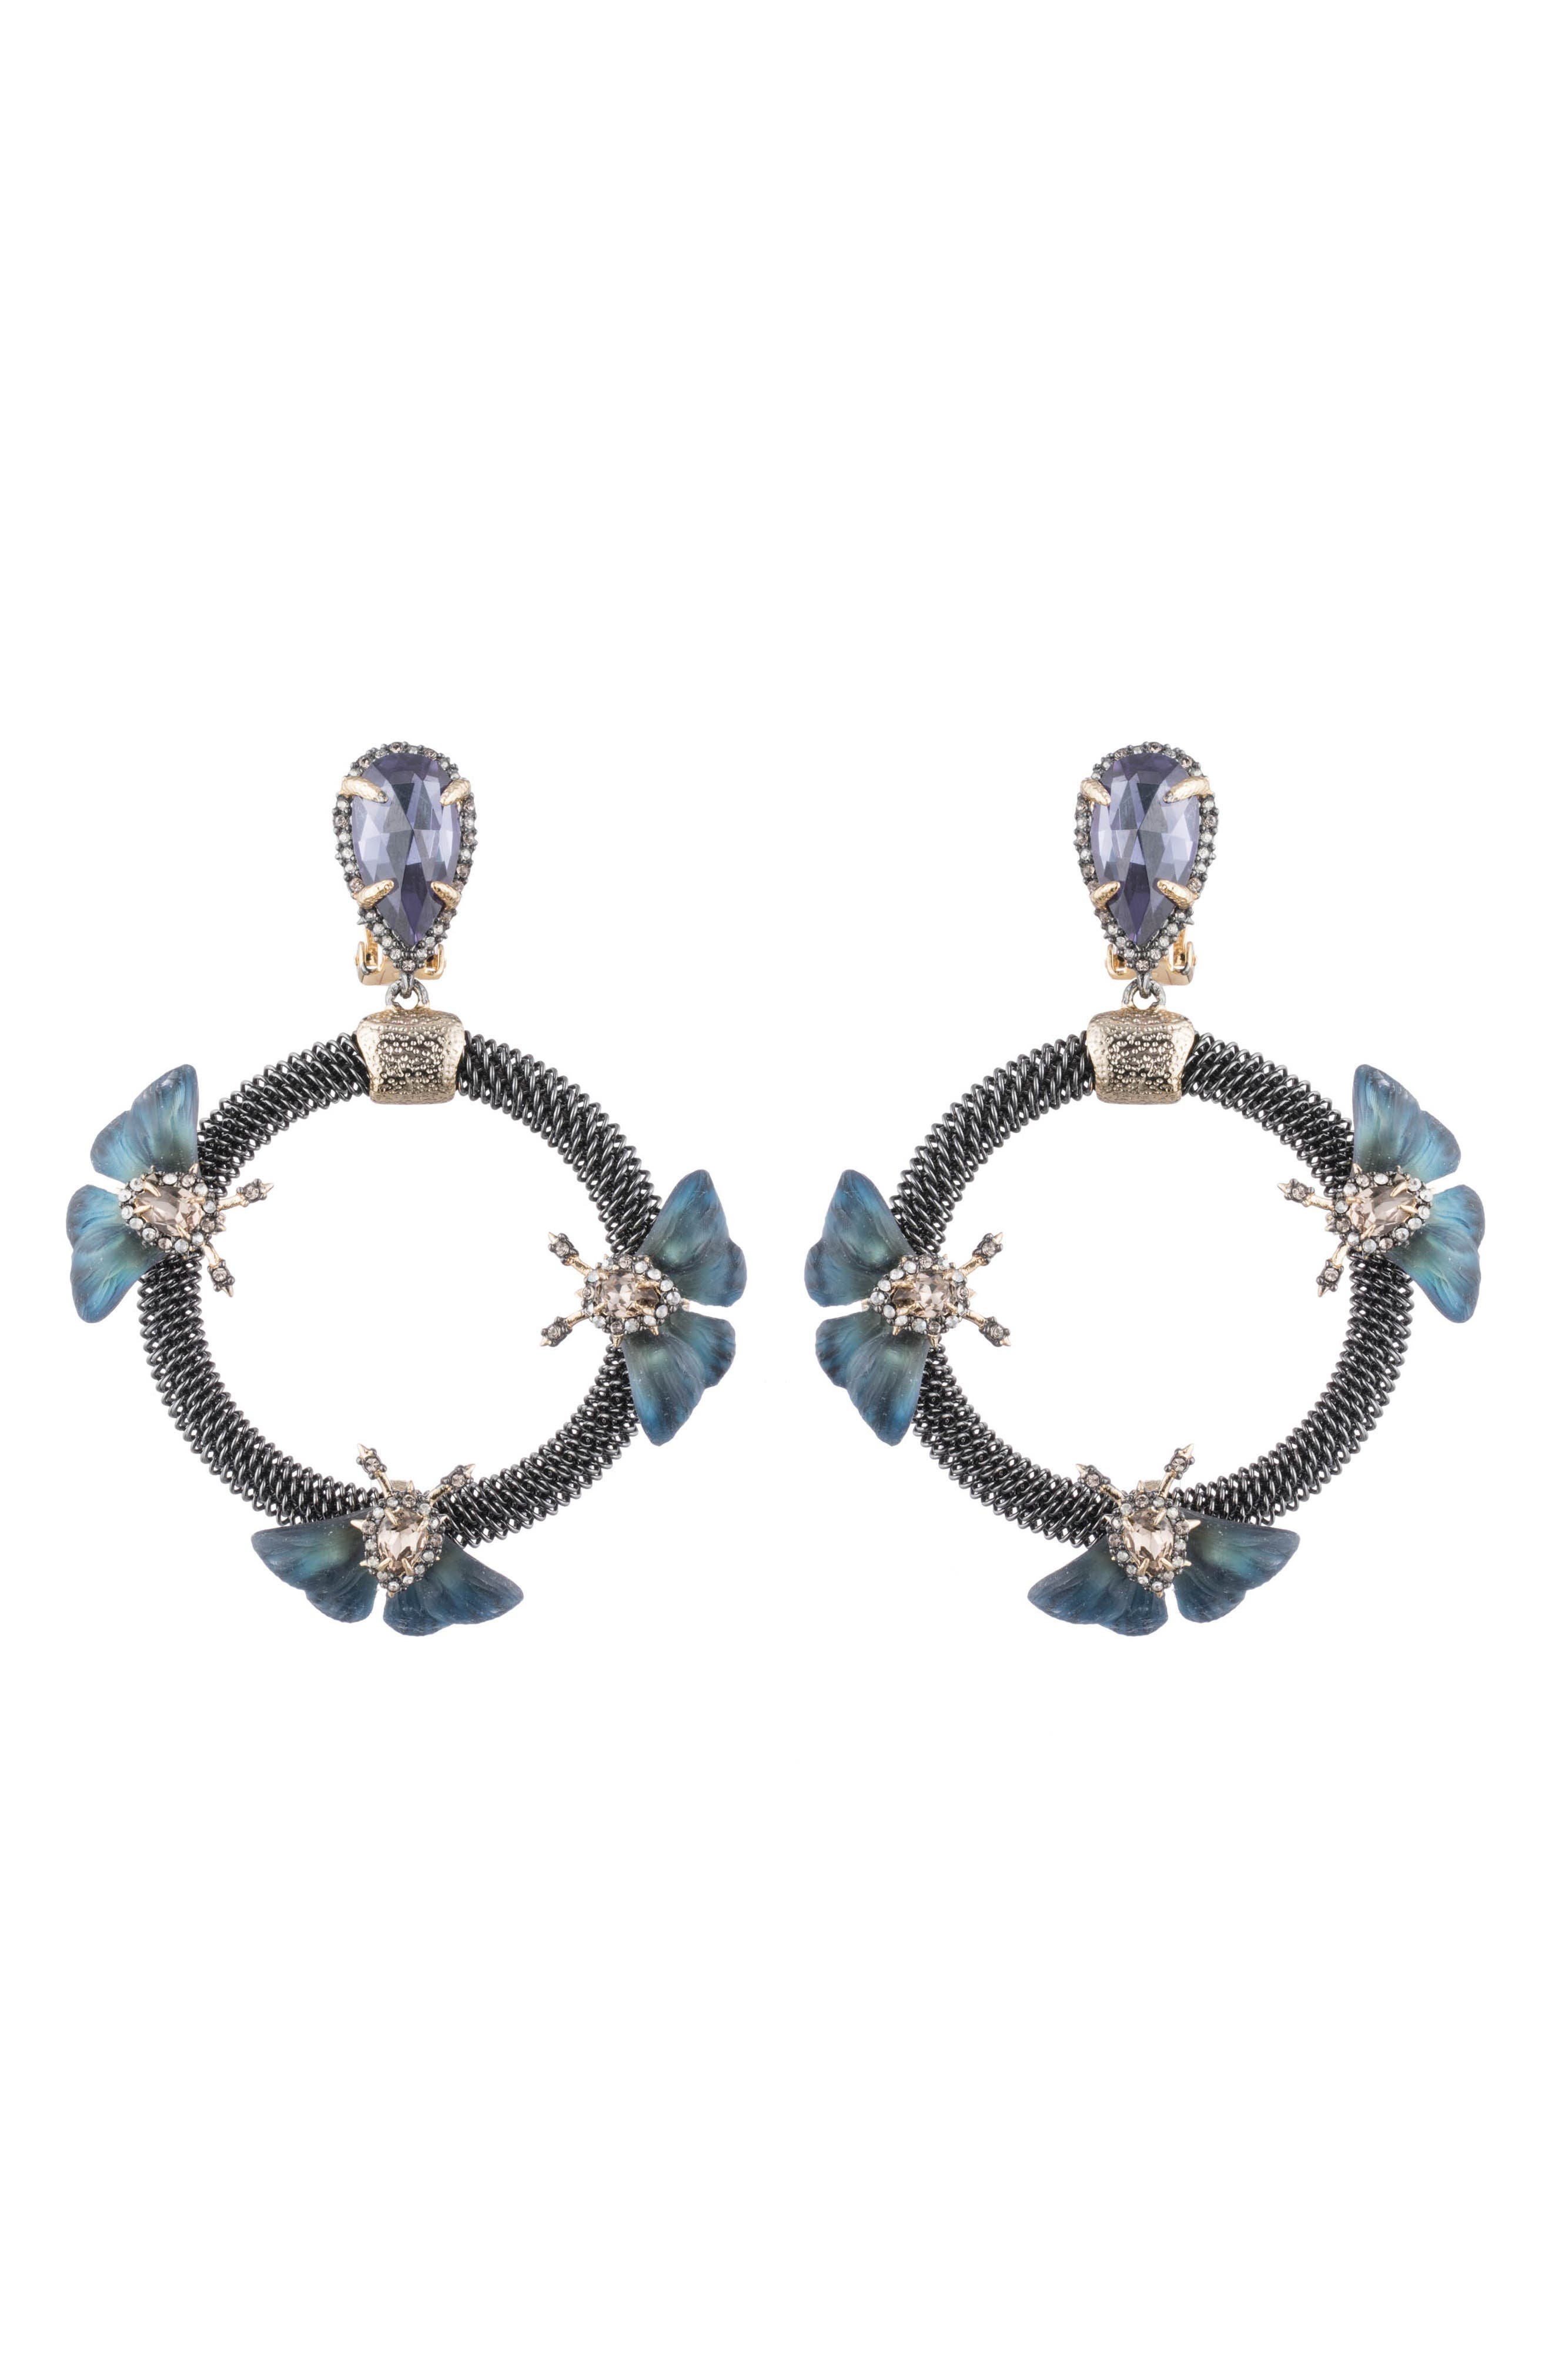 Brutalist Butterfly Crystal Clip-On Earrings in Dh Wing Print